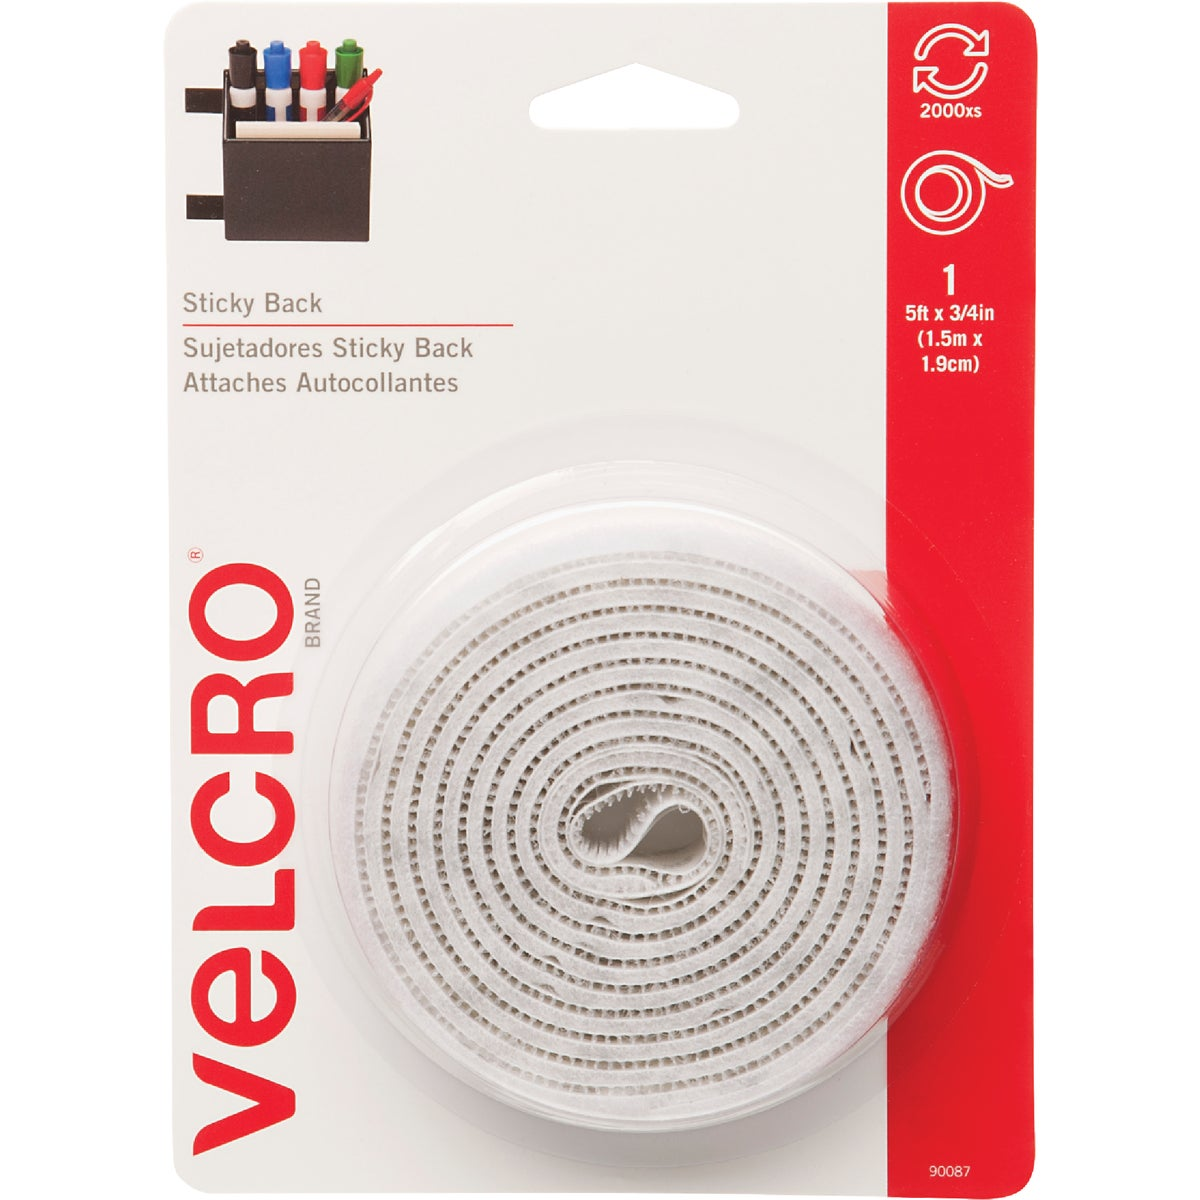 5' WHT ADHESIVE FASTENER - 90087 by Velcro Usa